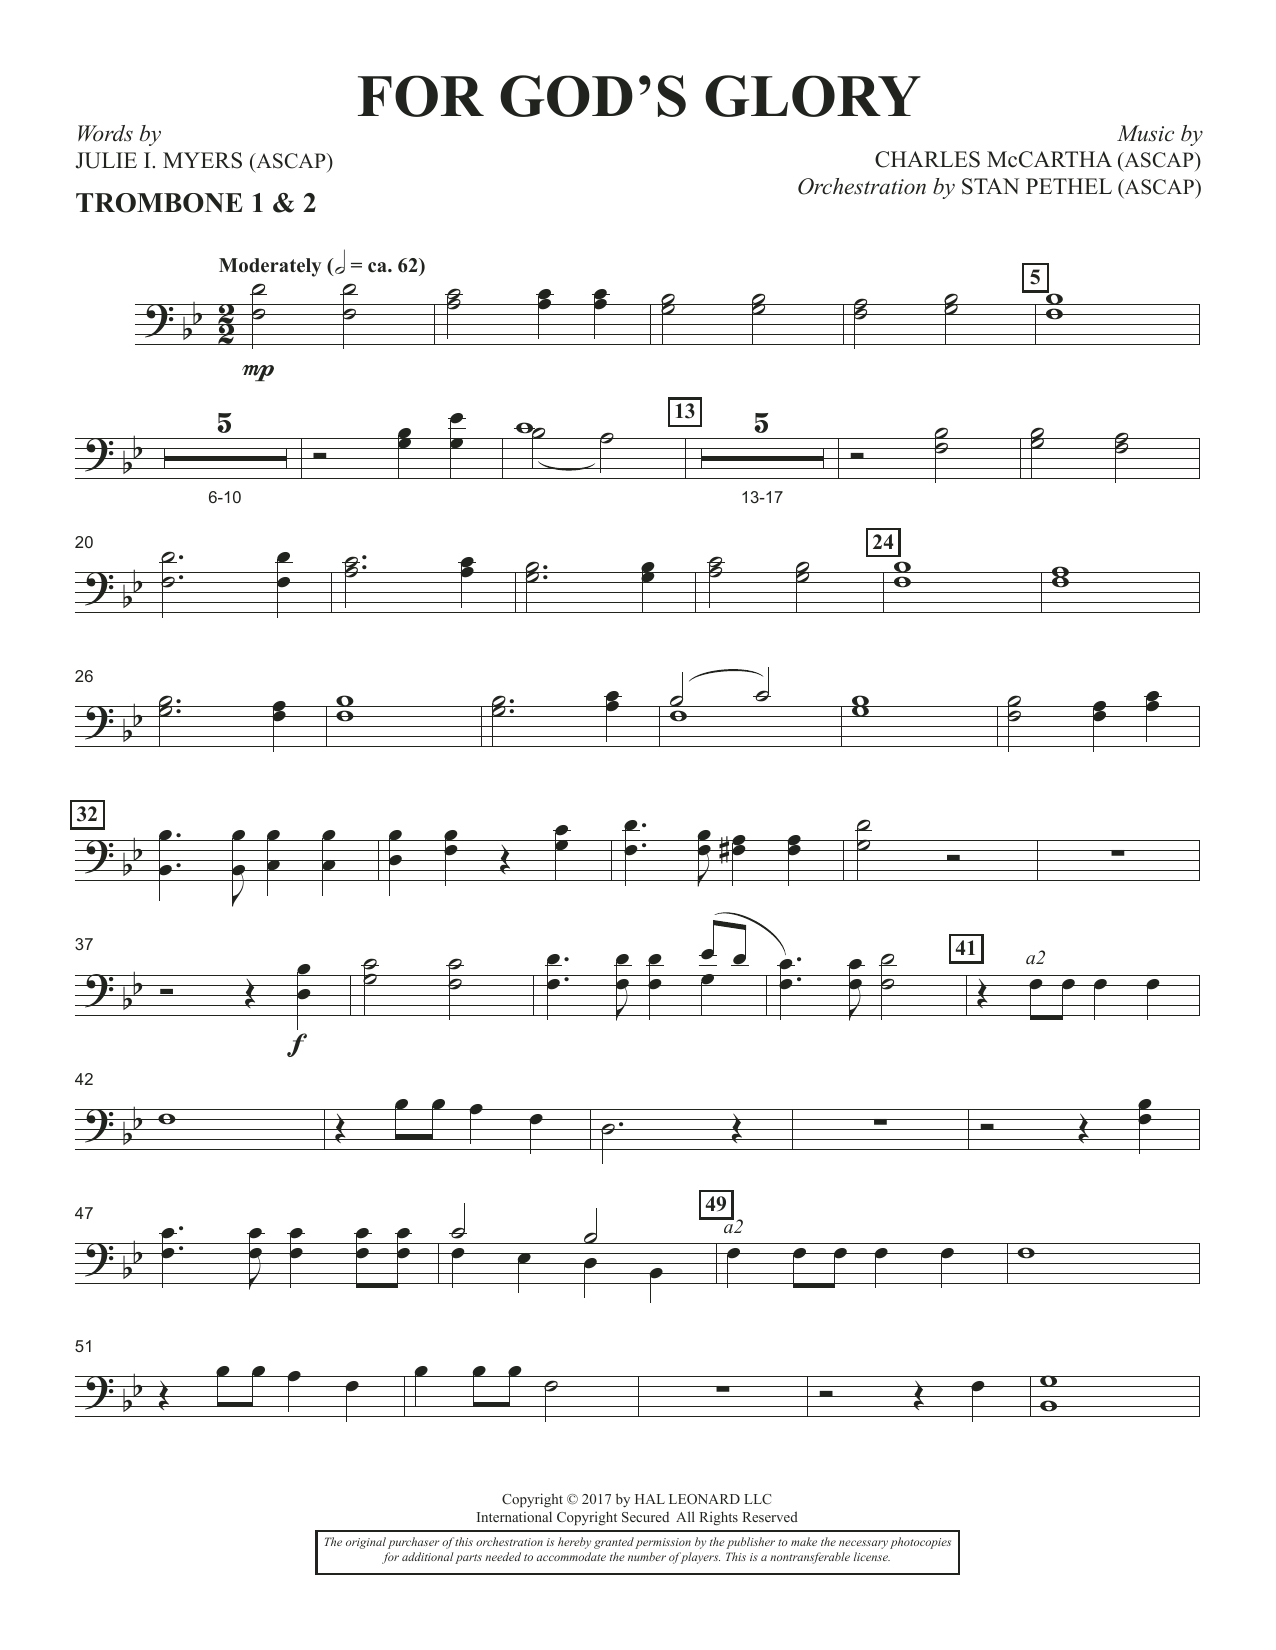 Charles McCartha For God's Glory - Trombone 1 & 2 sheet music notes and chords. Download Printable PDF.